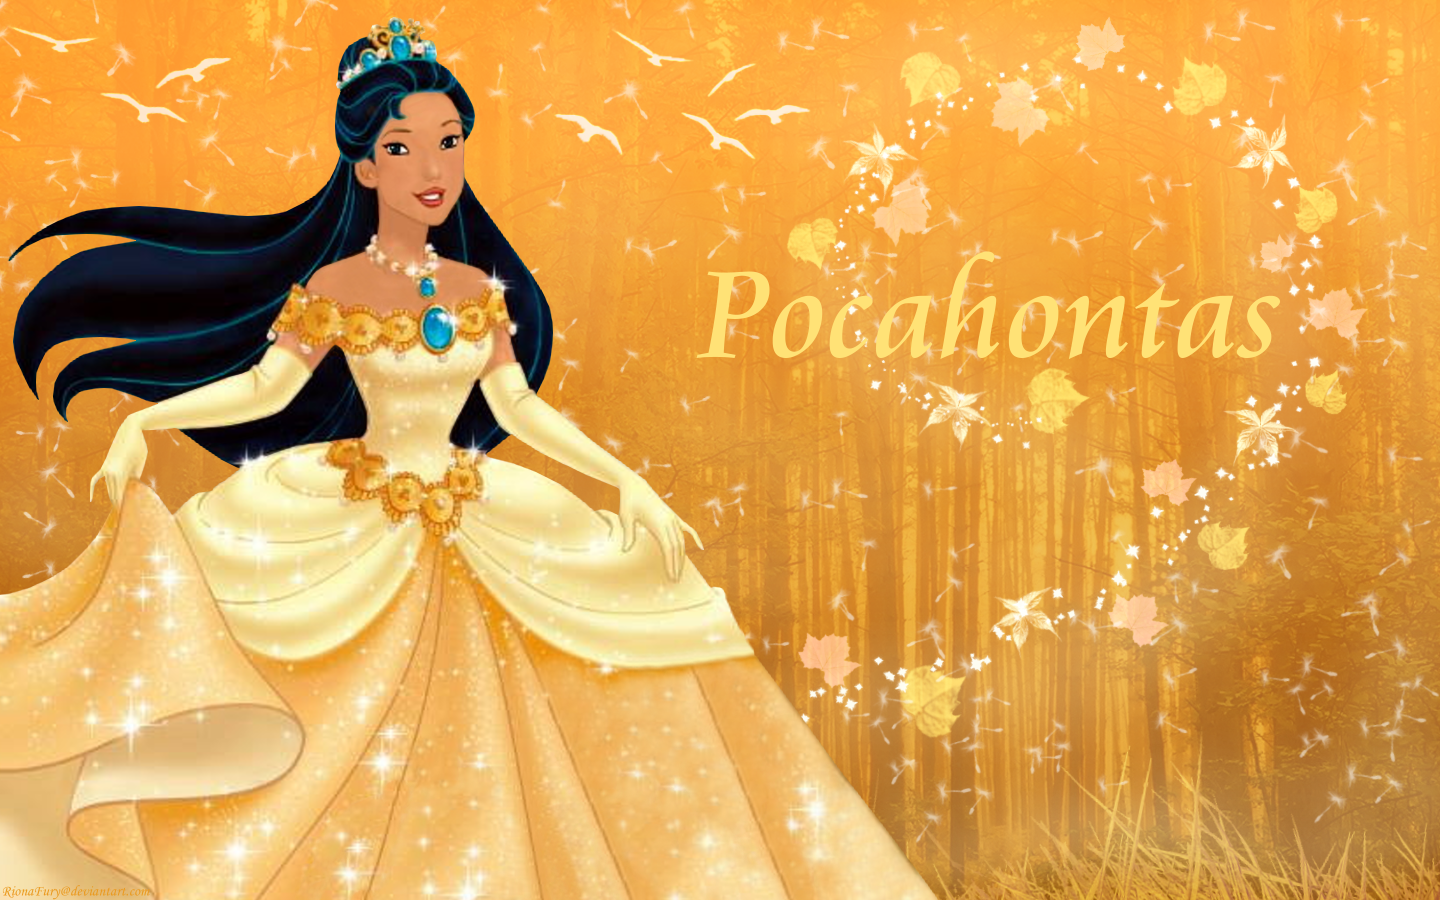 New Pocahontas Backgrounds, View #39150993 Pocahontas Wallpapers